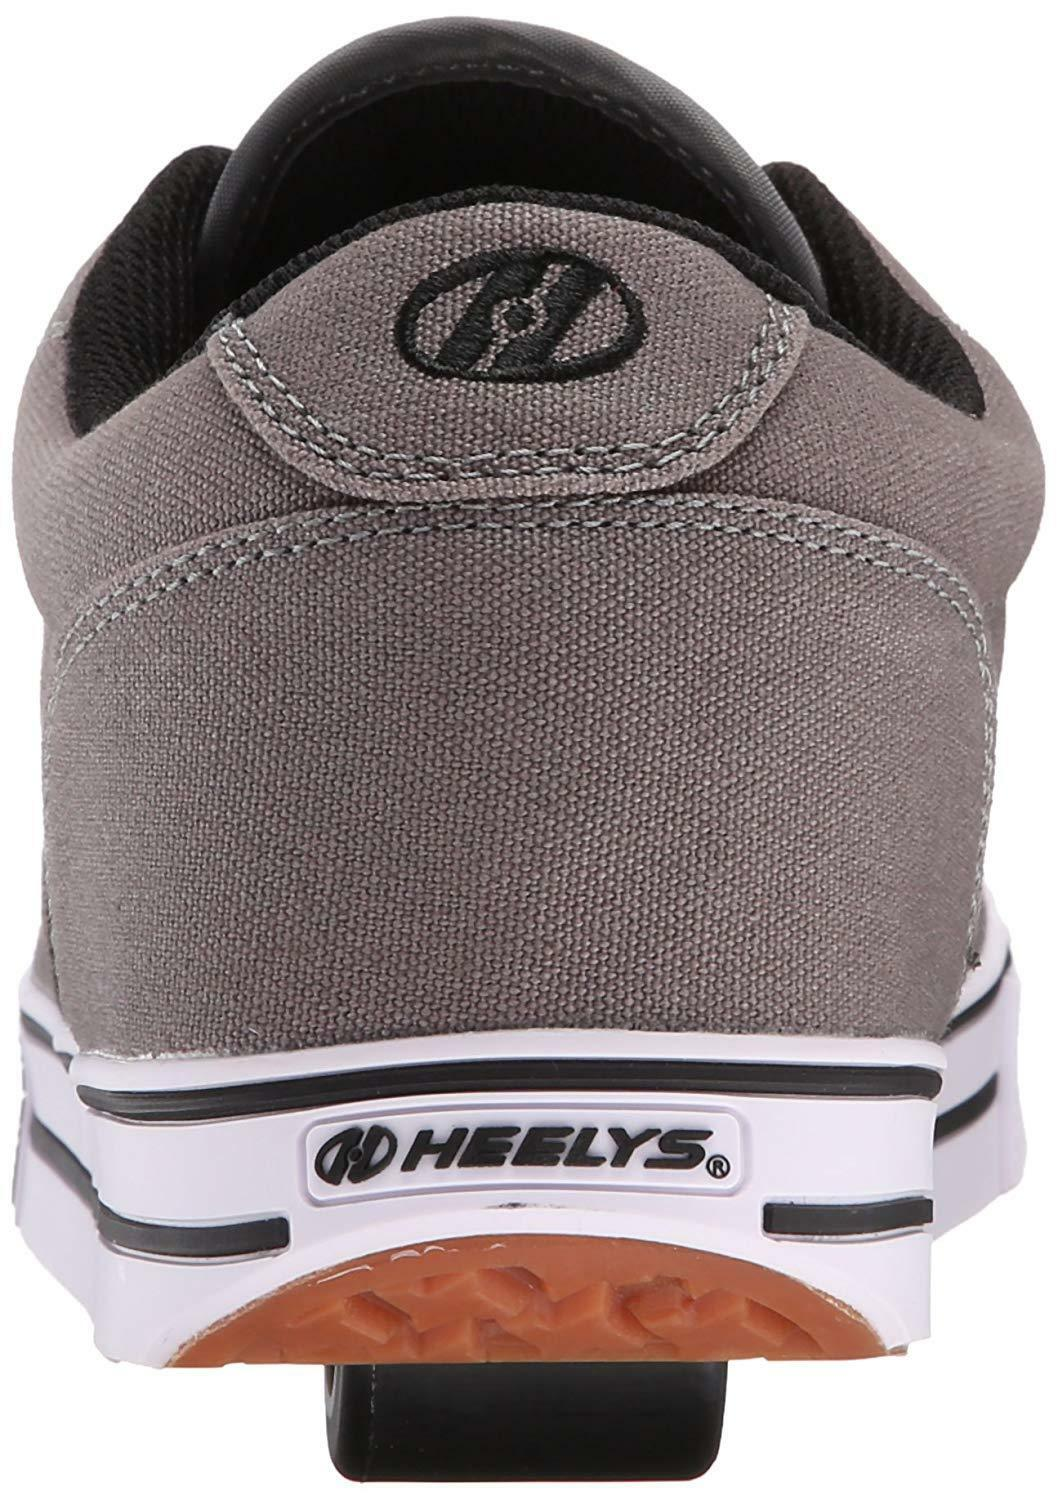 HEELYS MENS LAUNCH GREY CANVAS CANVAS CANVAS 770157M GRY MENS US SIZES 39314f